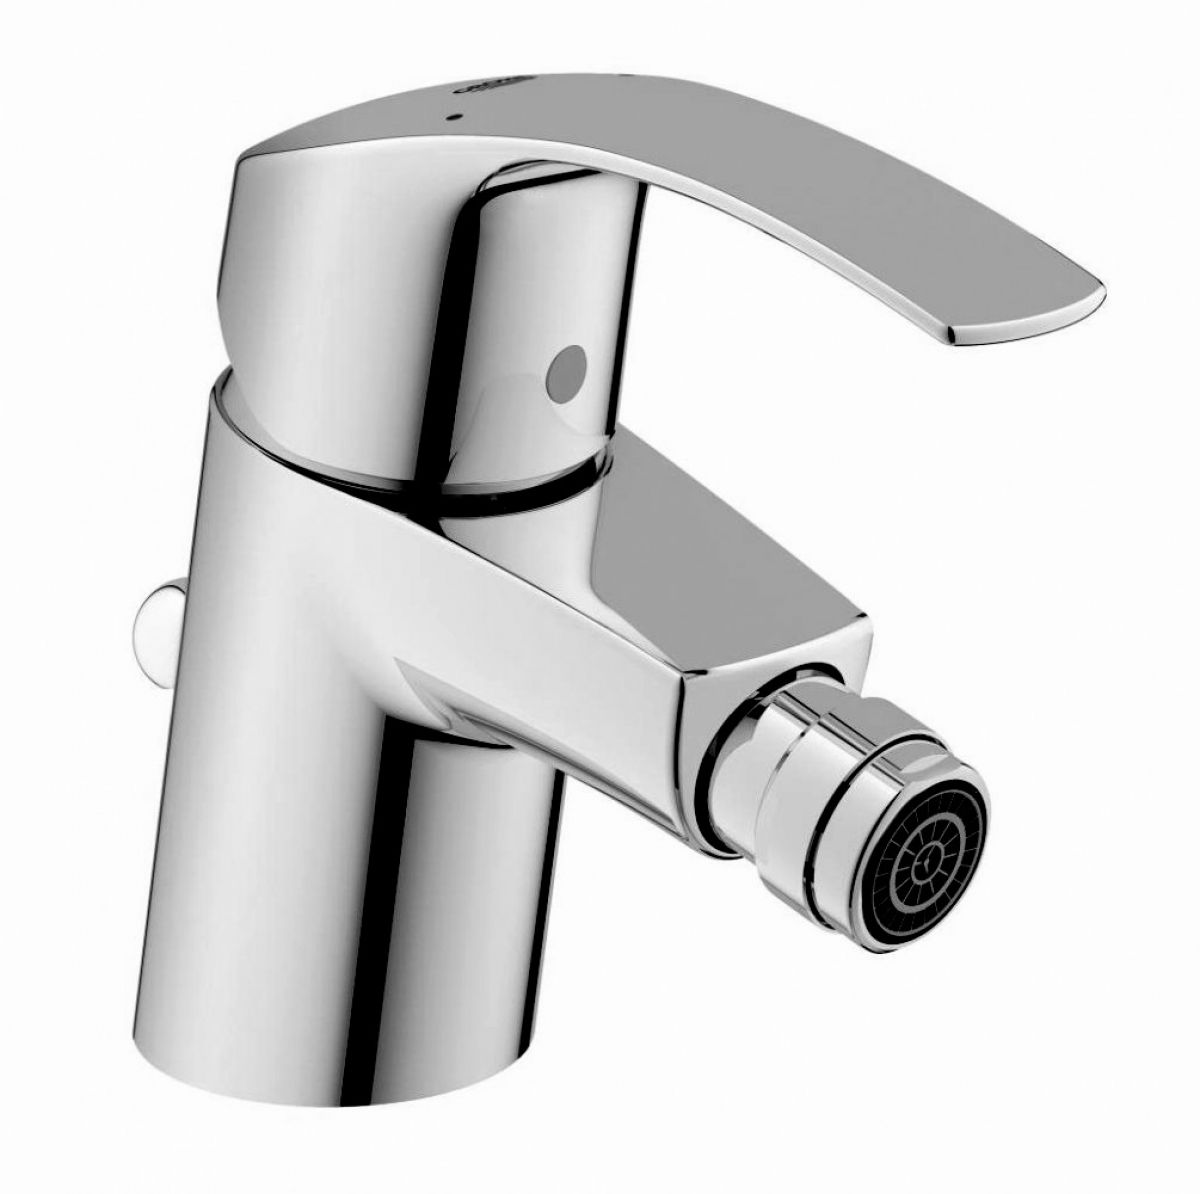 grohe eurosmart bidet mixer uk bathrooms. Black Bedroom Furniture Sets. Home Design Ideas